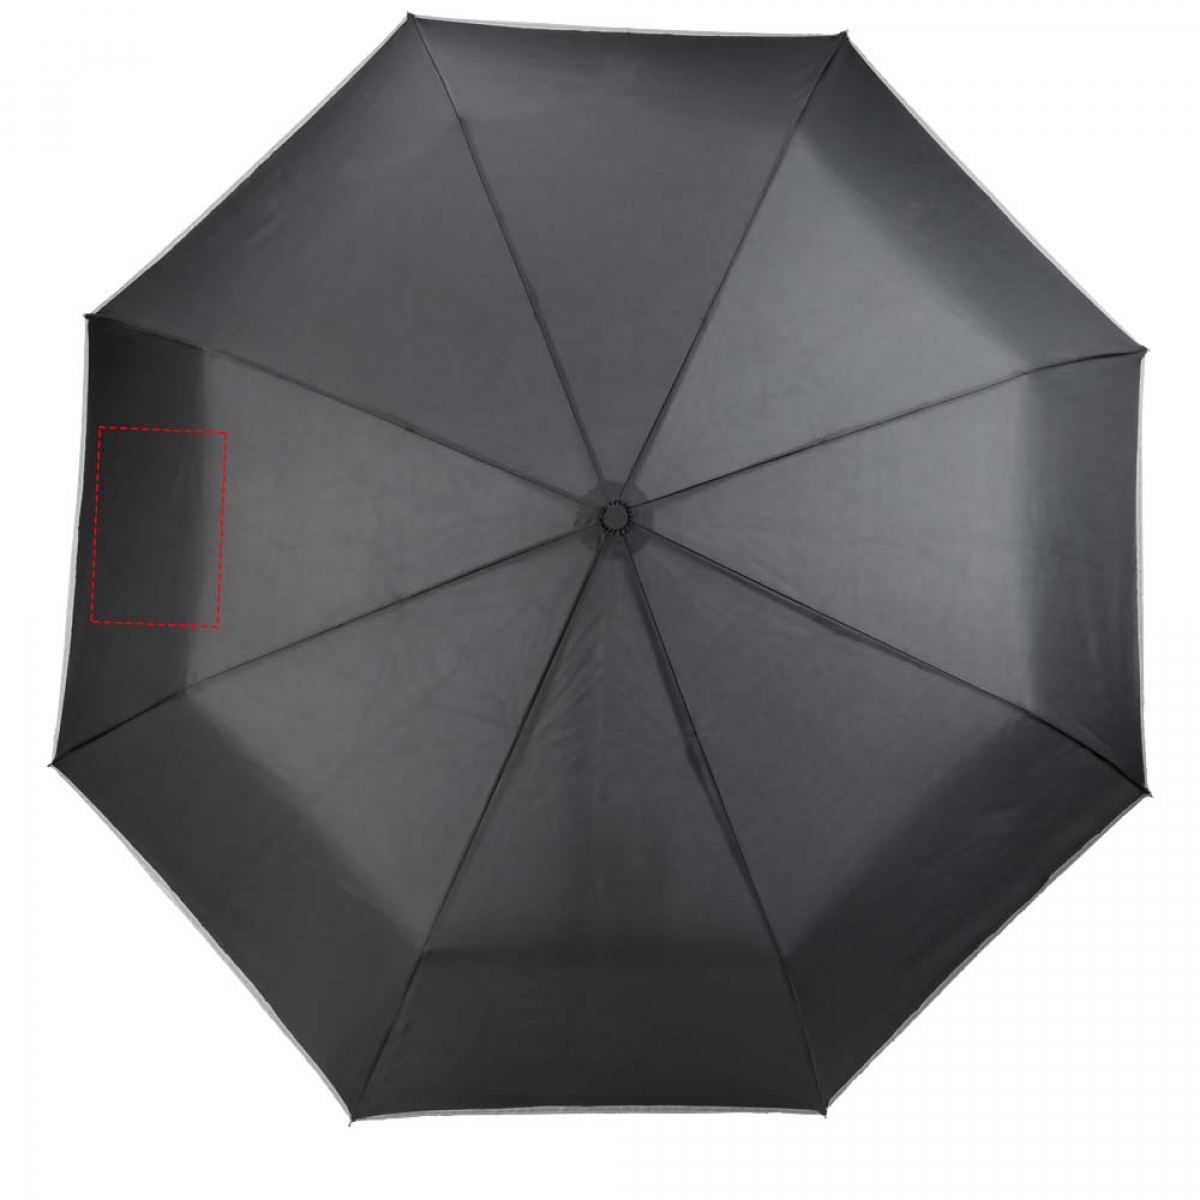 LED Light Handle AOC Umbrella - 7de paneel